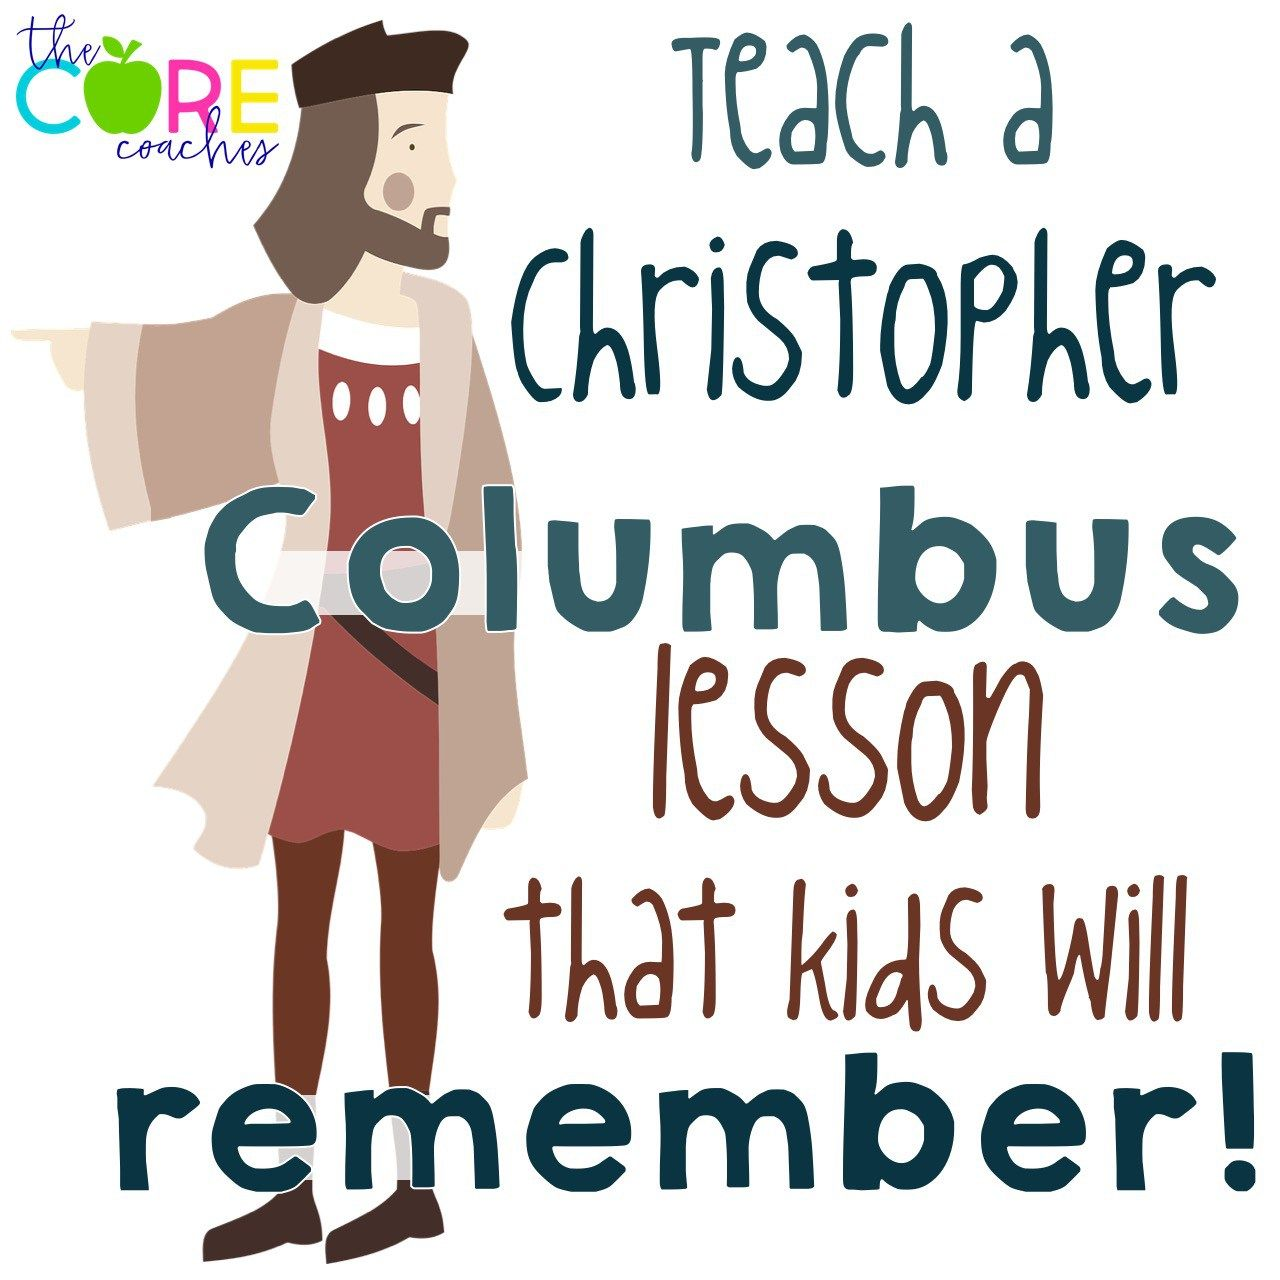 Teach interactive Columbus Day lessons that kids will remember ...